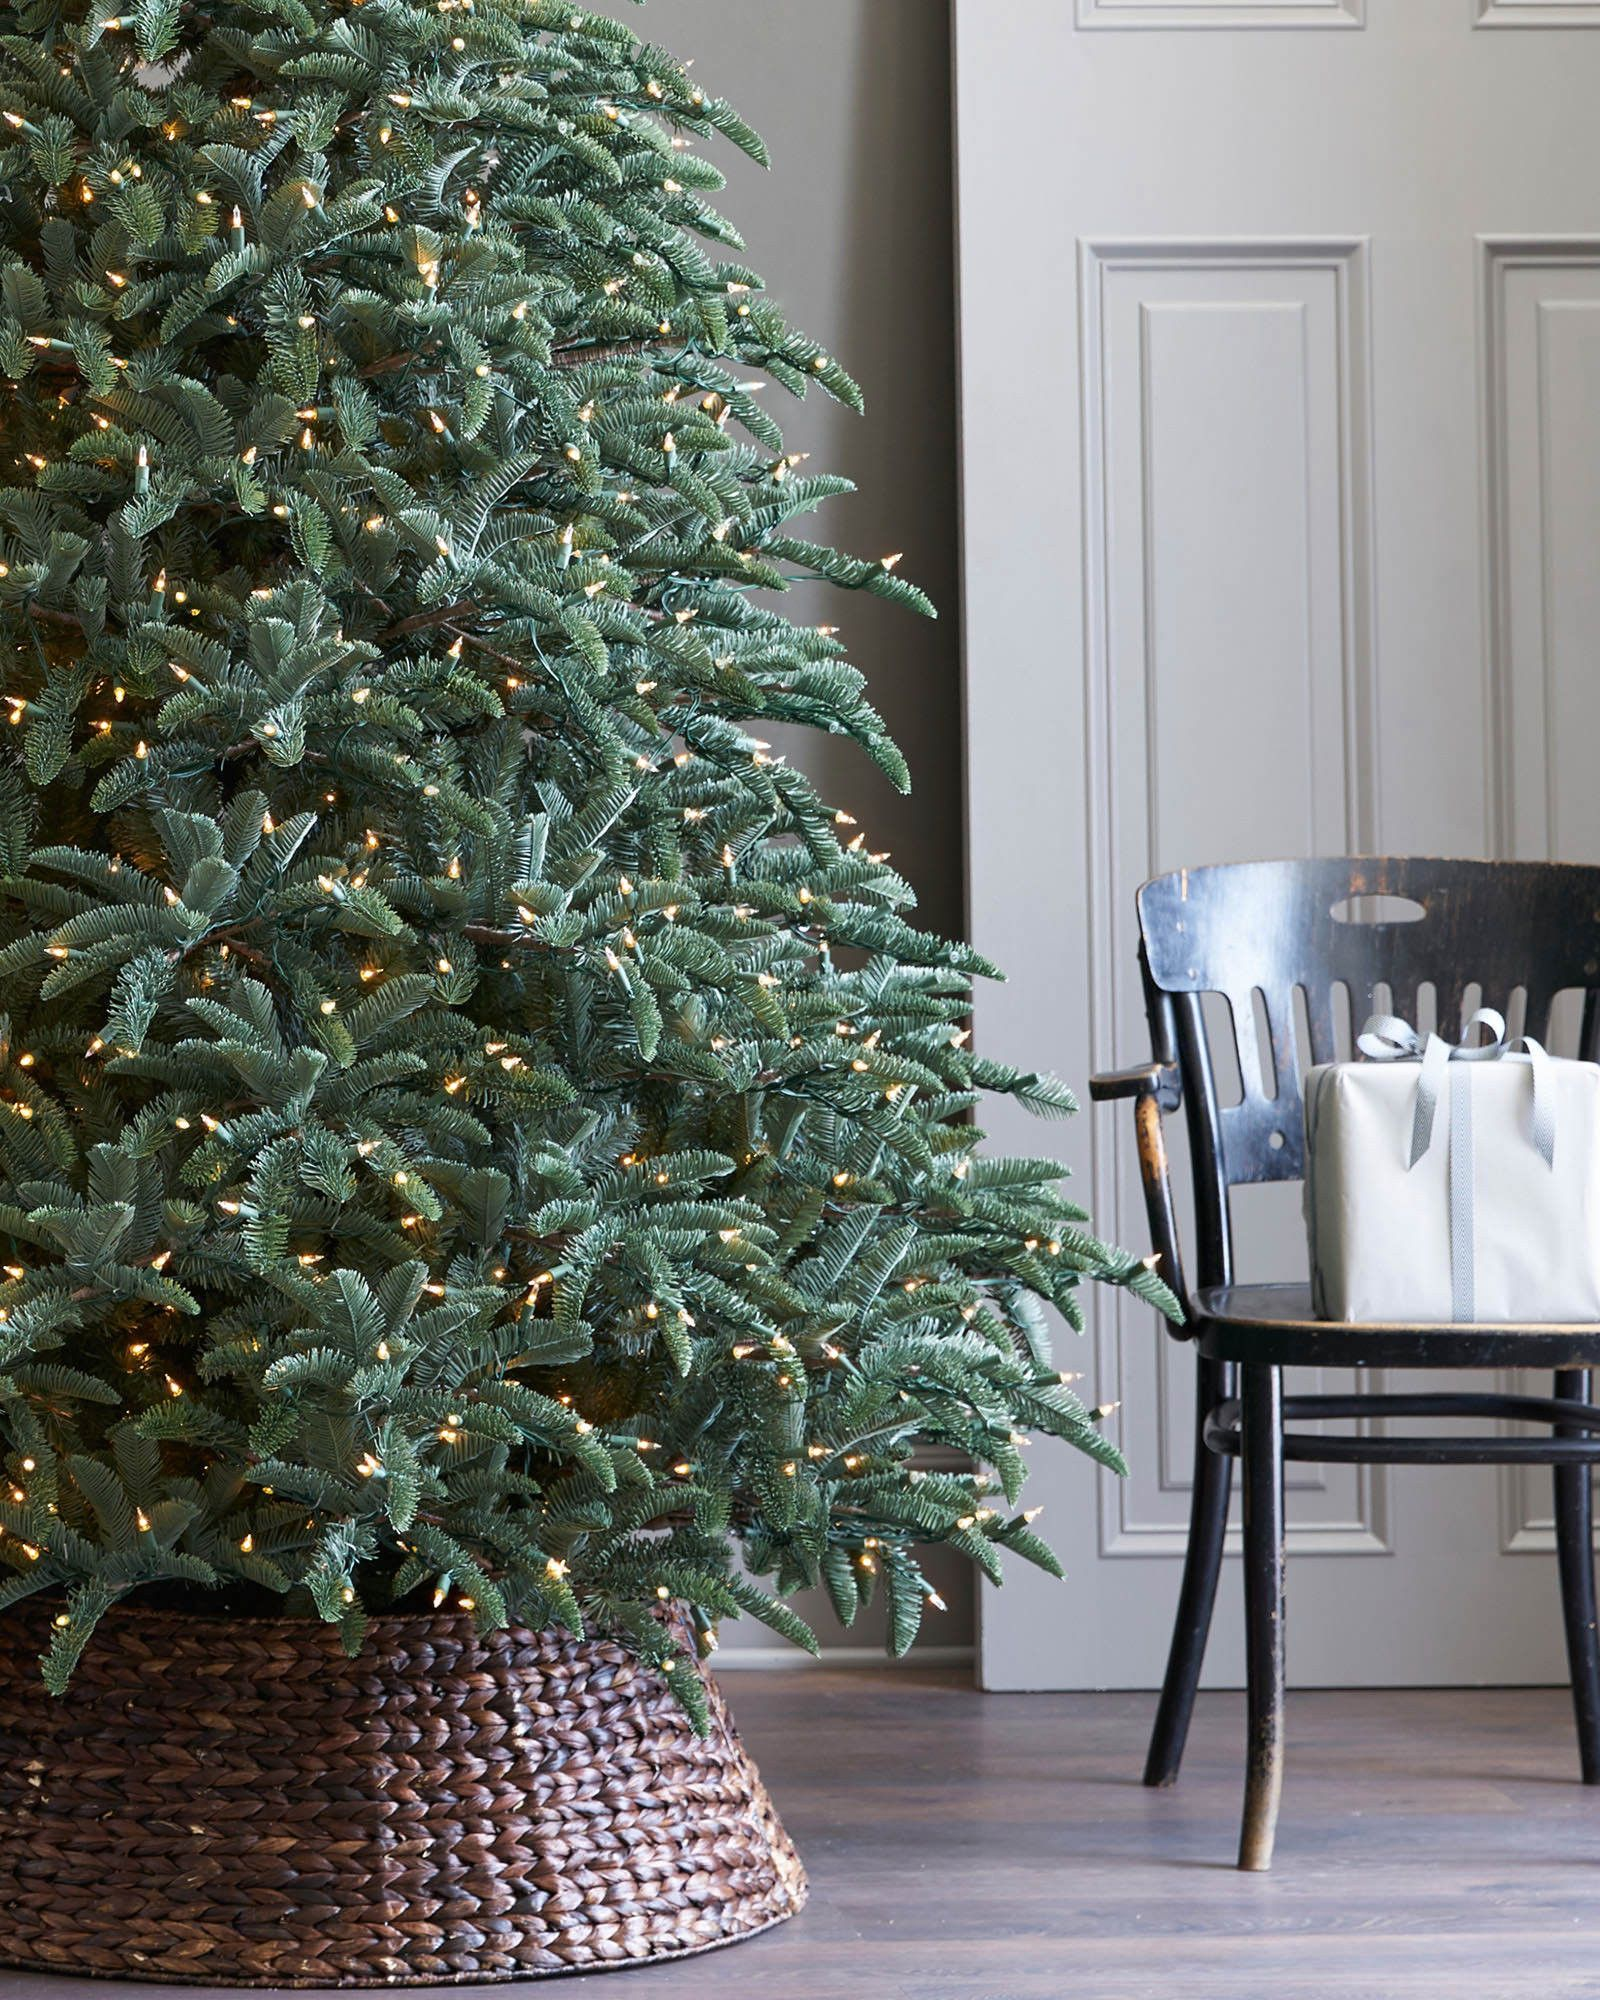 100 Noble Fir Unlit Artificial Christmas Tree  : NOB N 9 from stwoolf.com size 1600 x 2000 jpeg 501kB